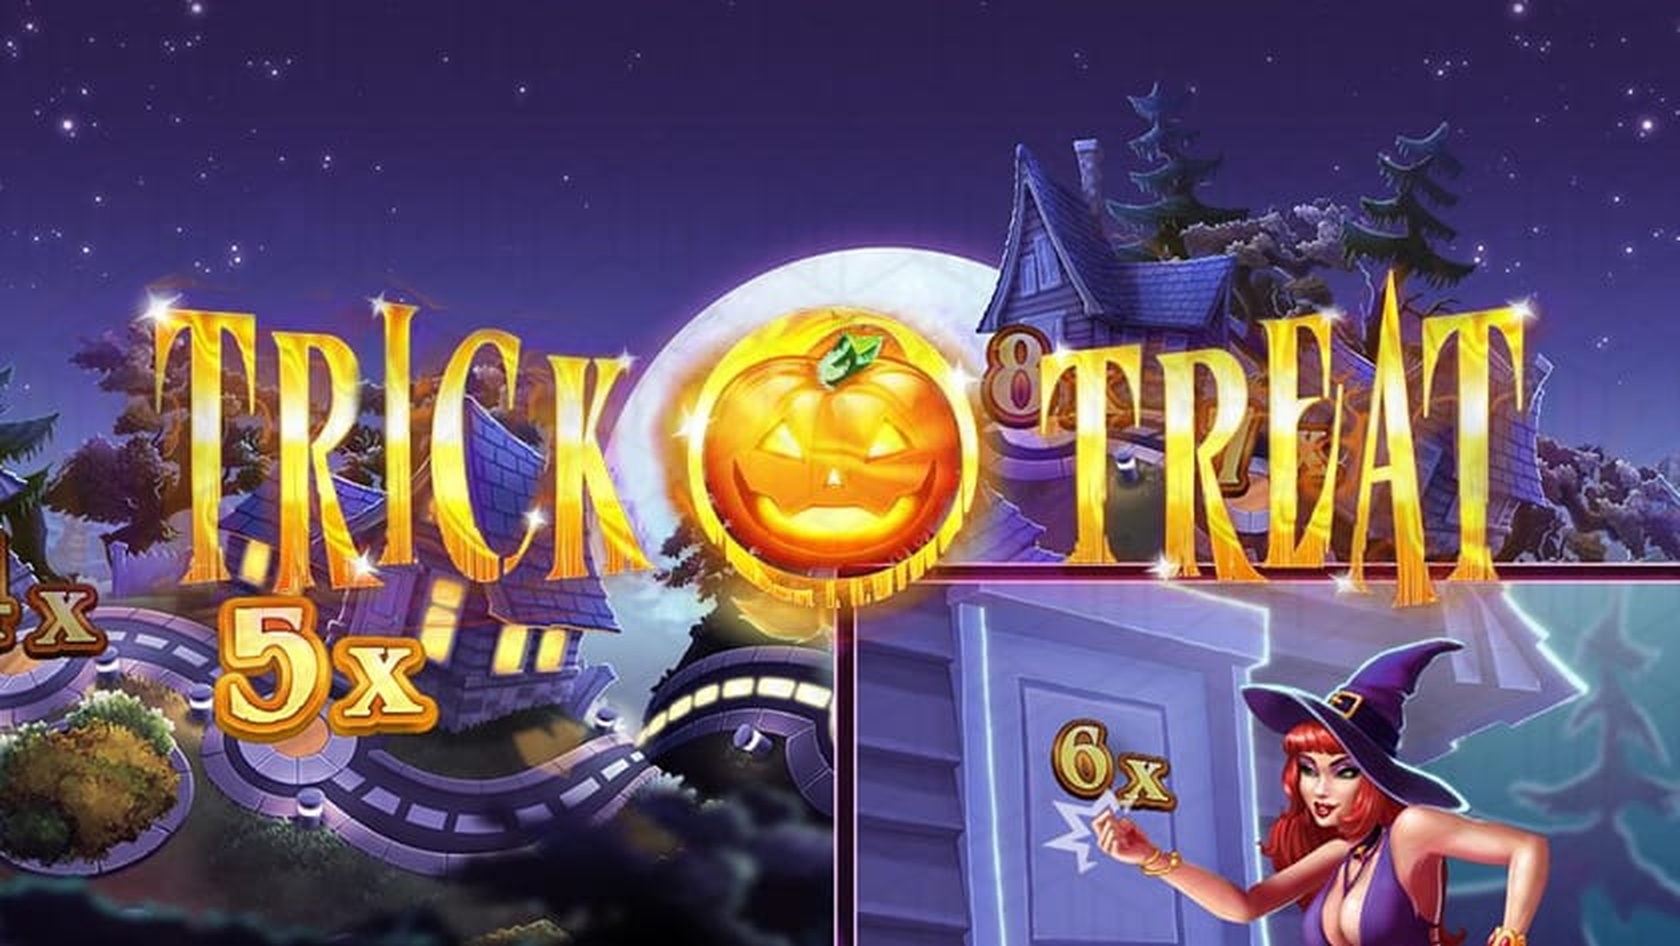 The Trick 'O' Treat Online Slot Demo Game by Cayetano Gaming